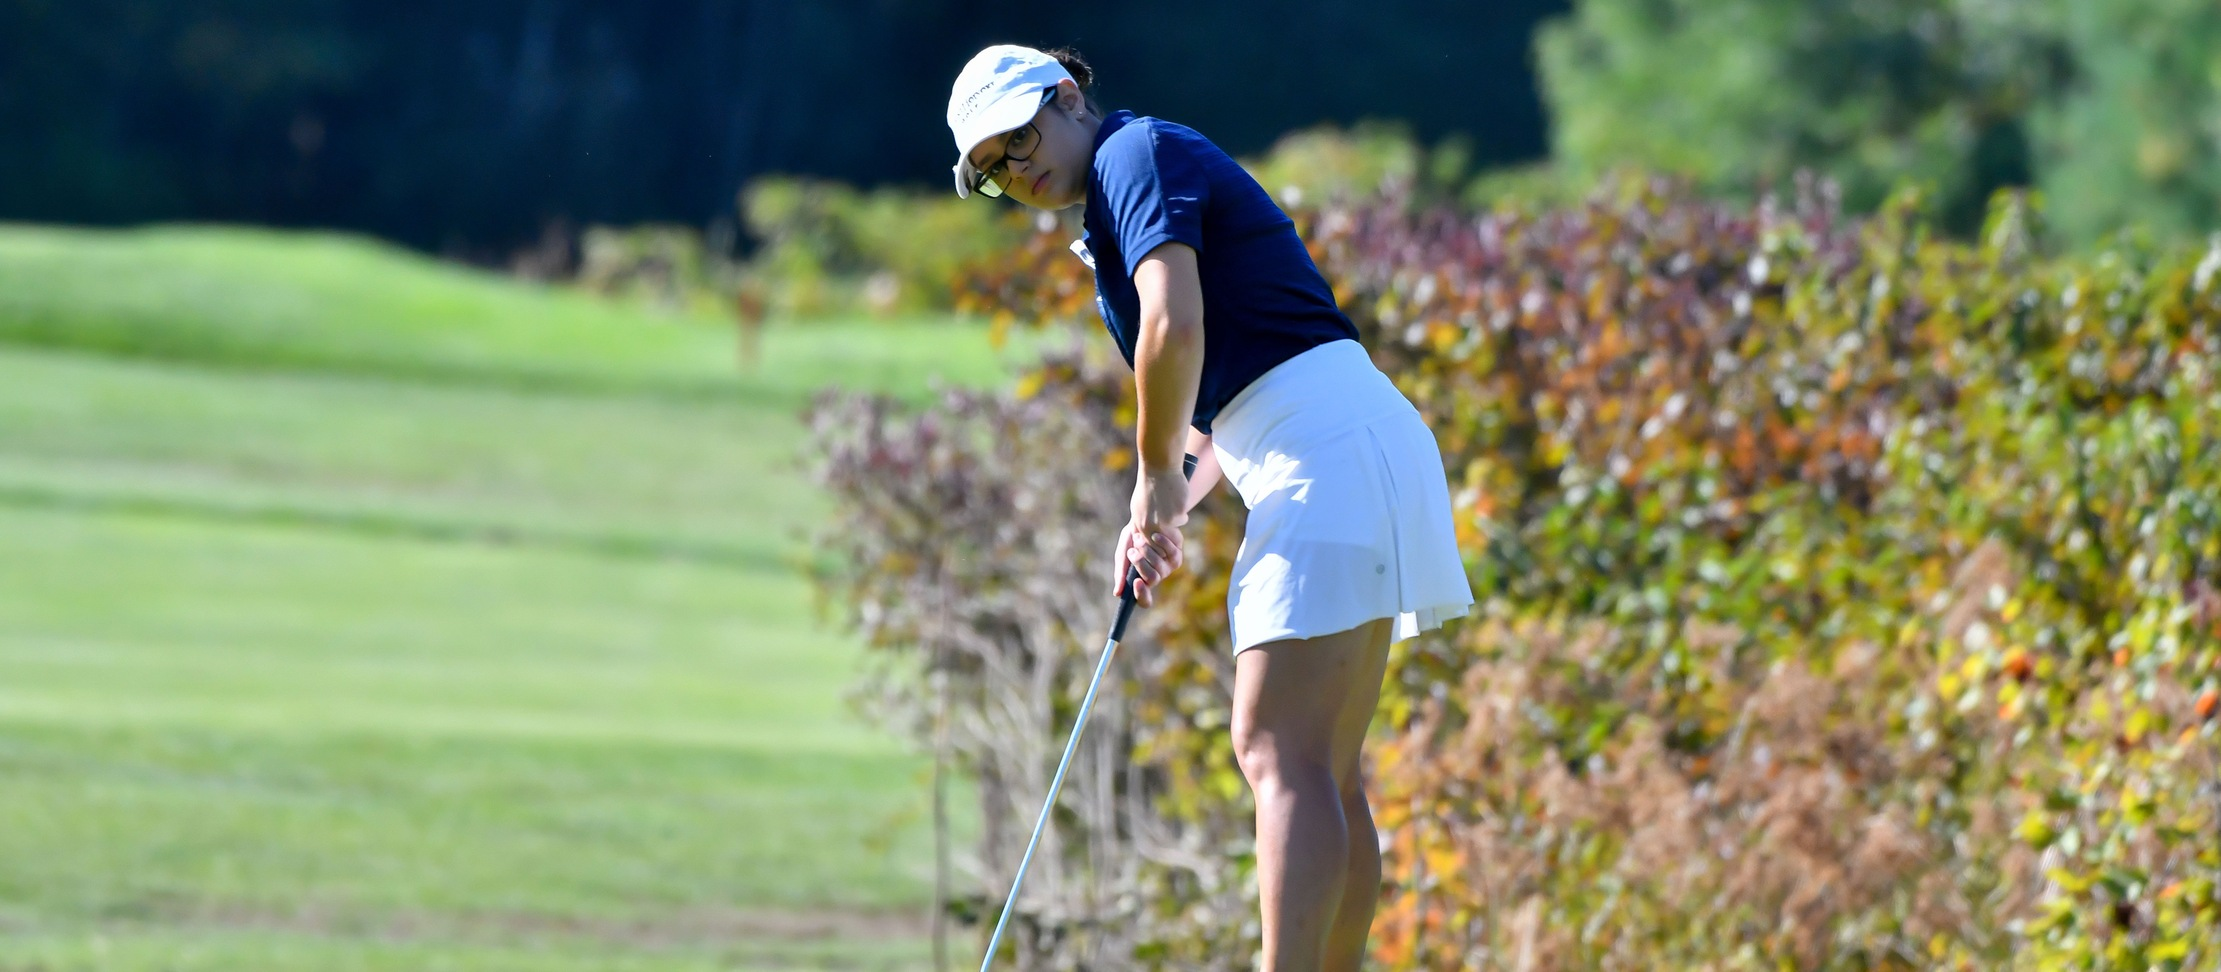 Action photo of Lyons golf player Stephanie Spitzer.